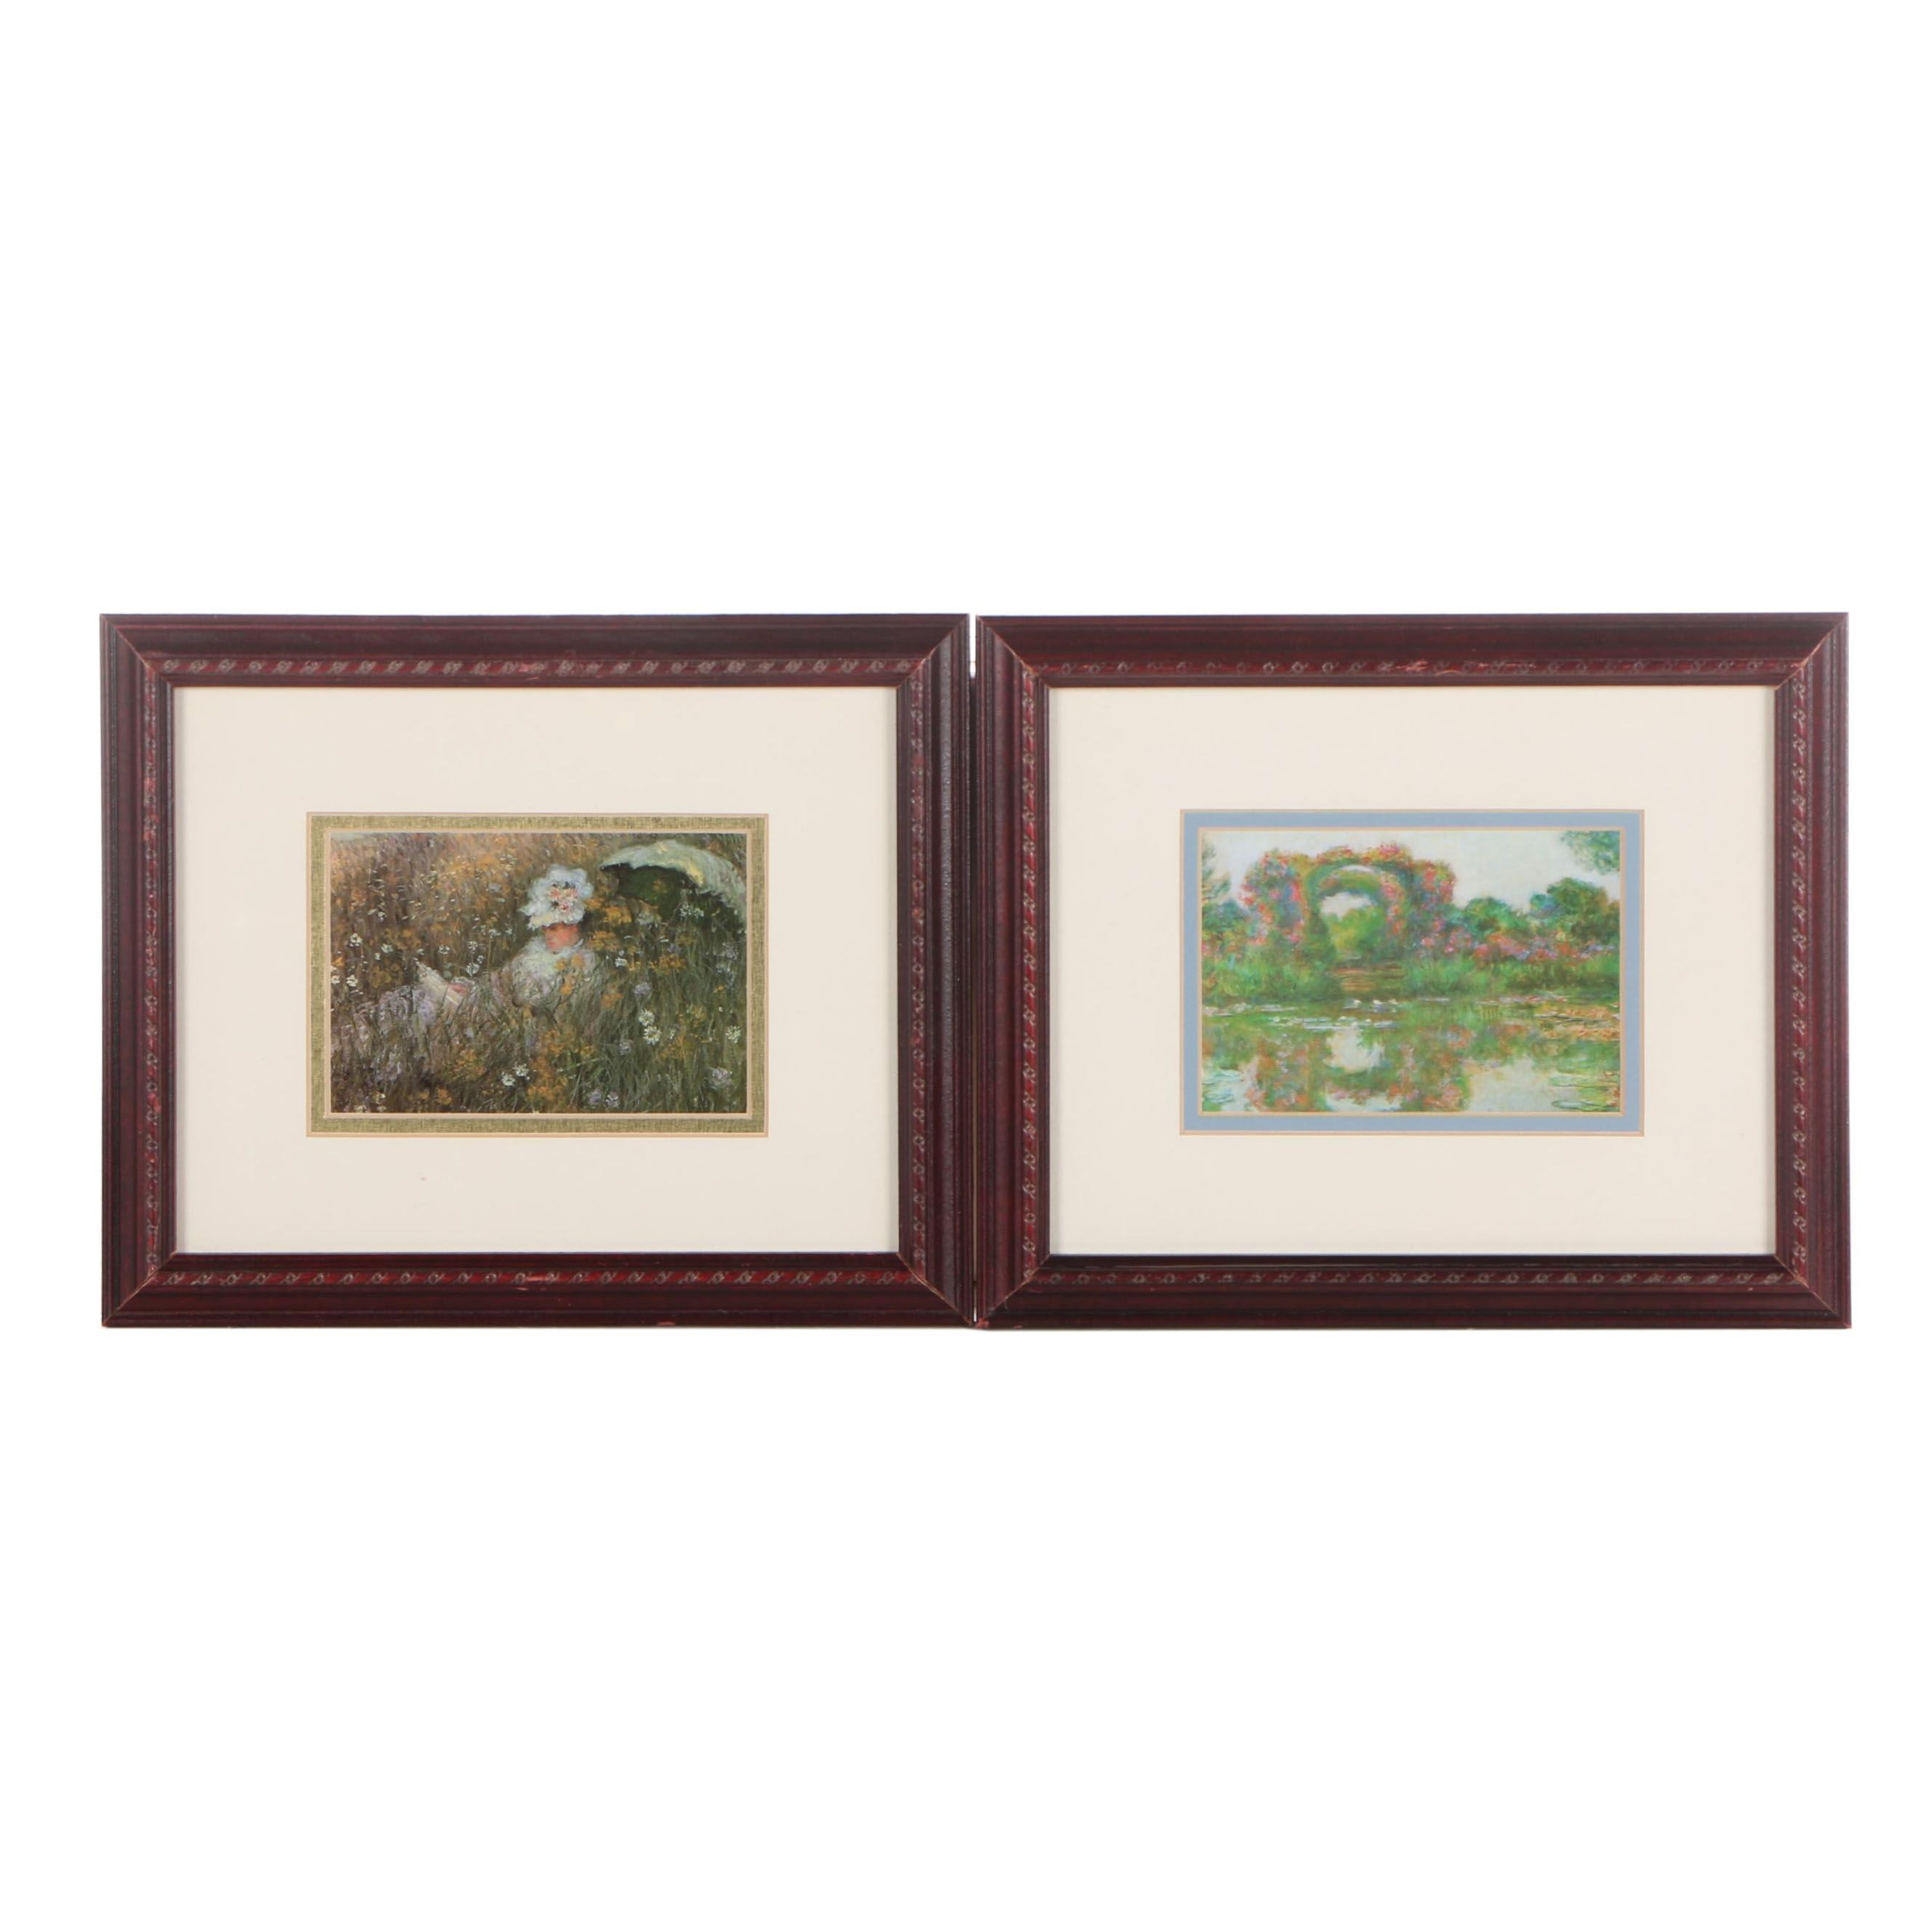 Two Impressionistic Offset Lithographs